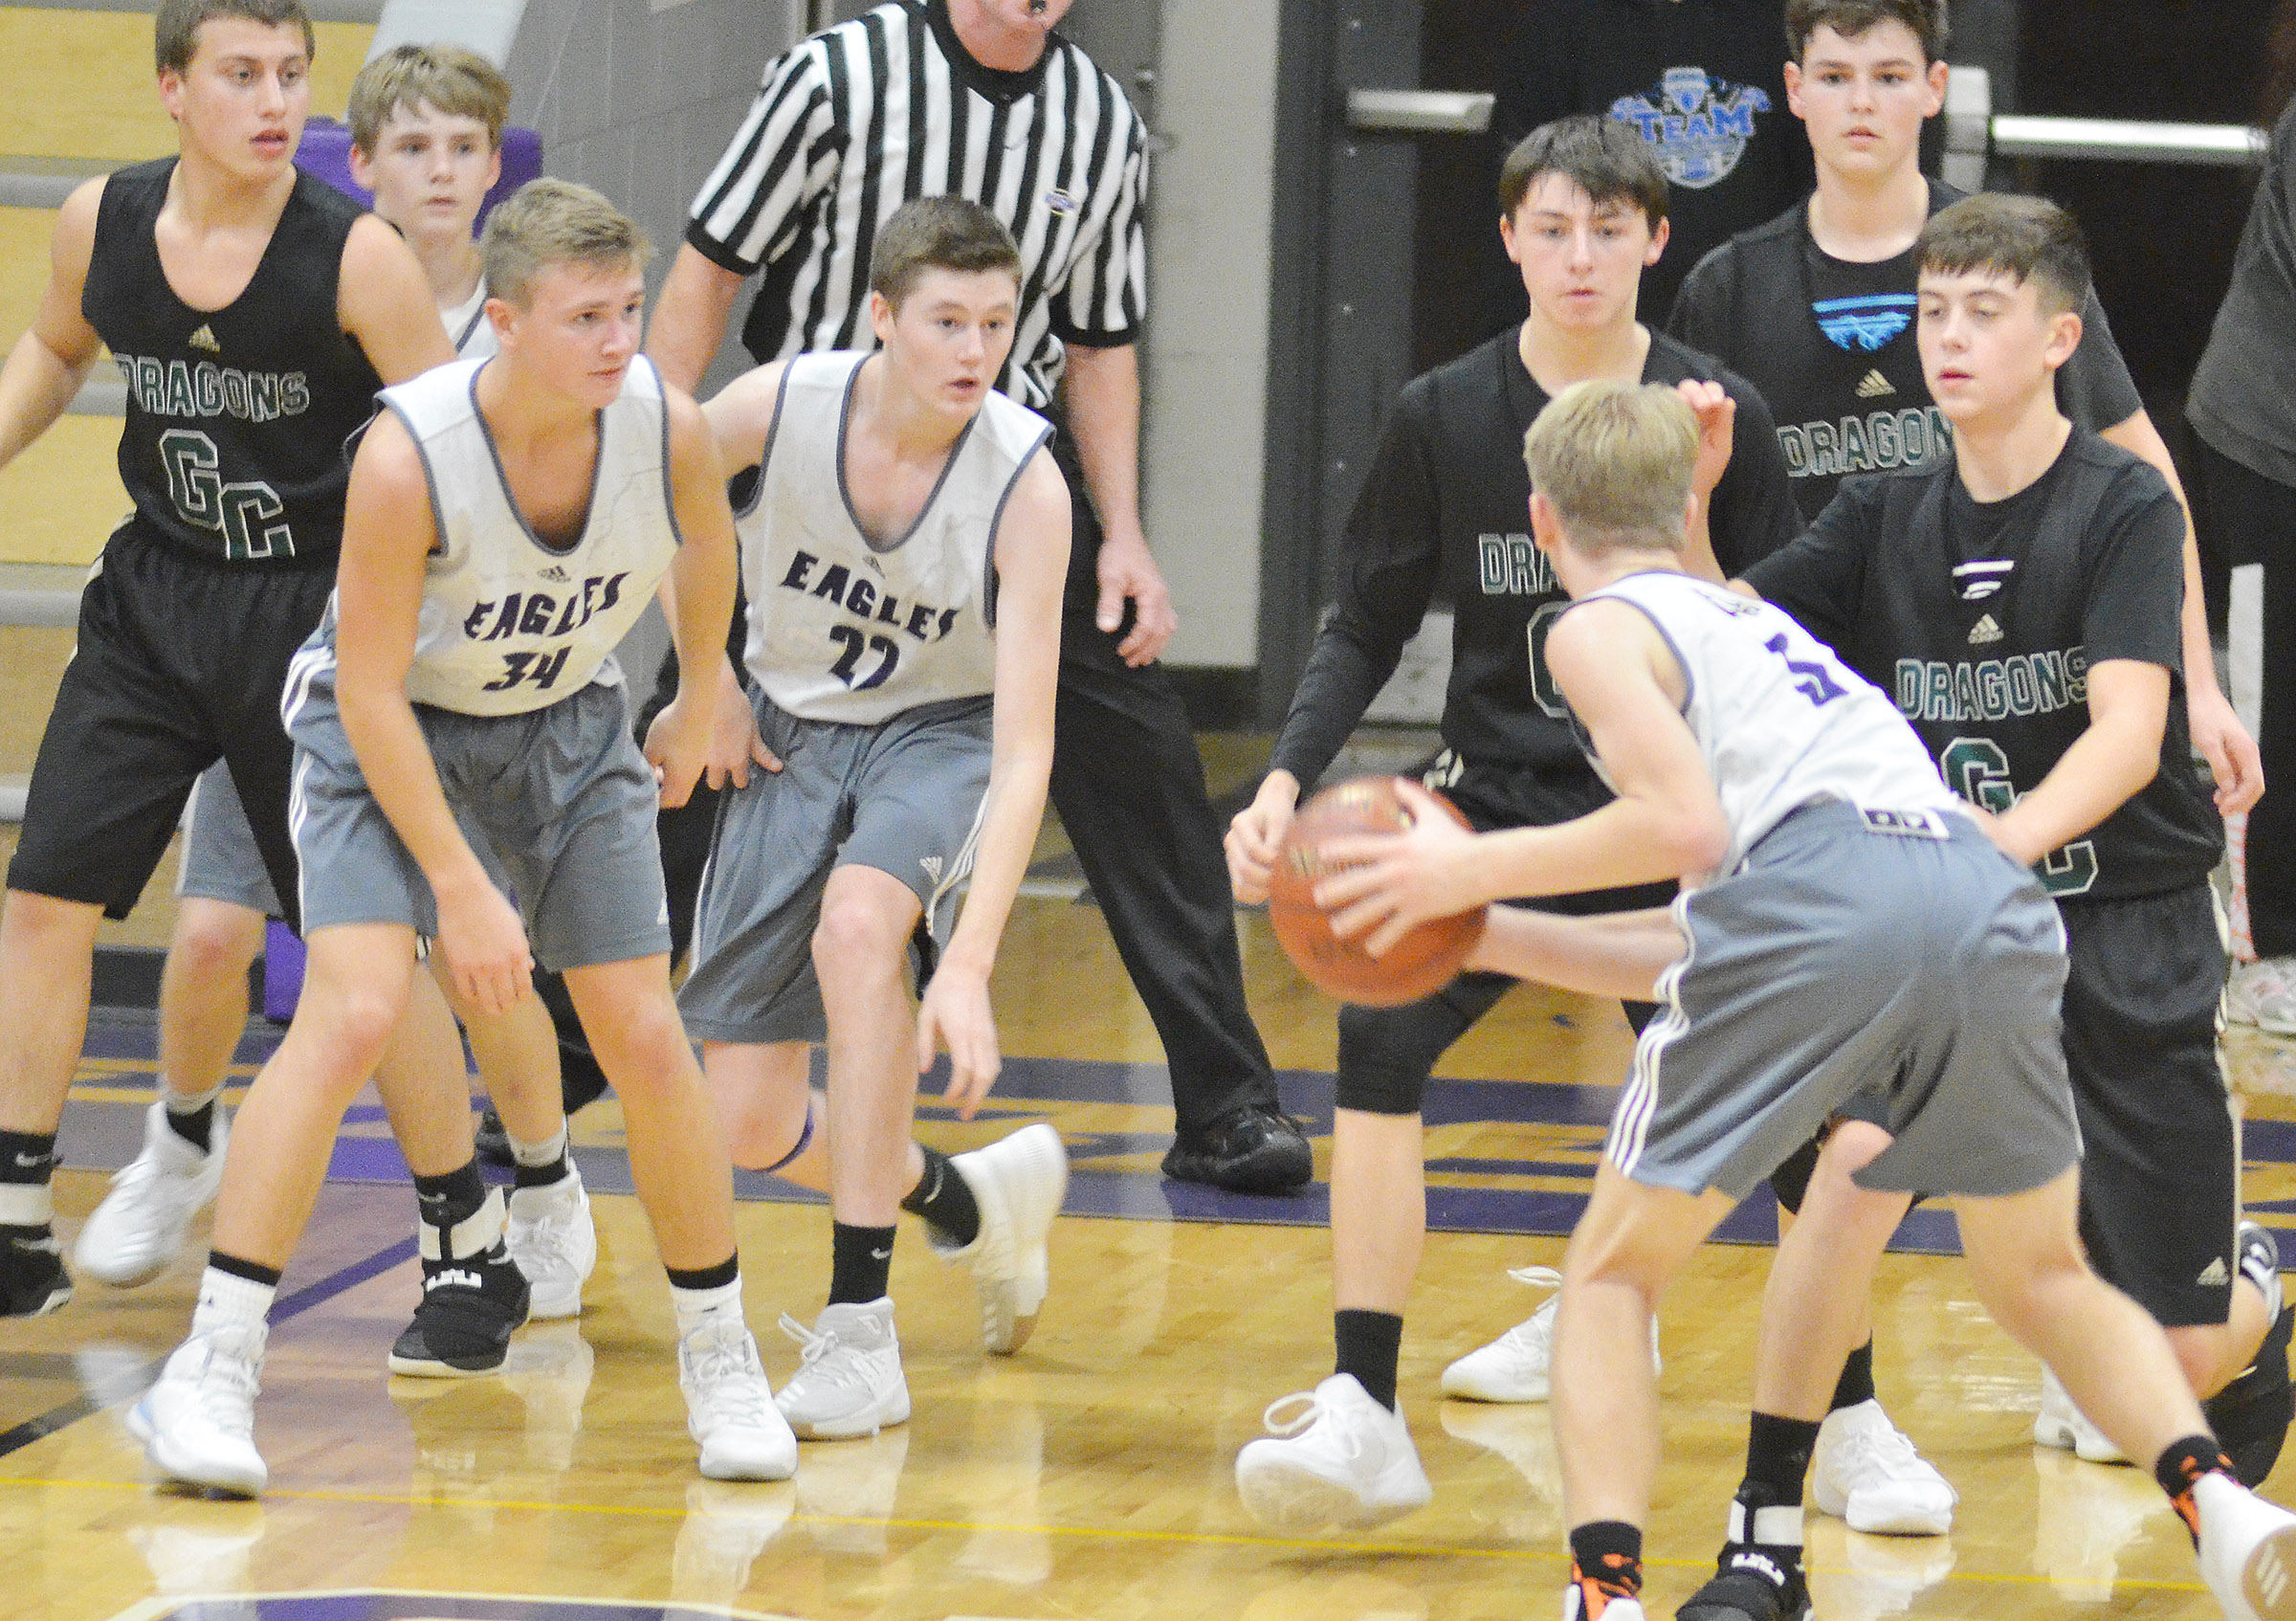 CHS freshman Arren Hash looks to pass as his teammates Blase Wheatley, at left, and Tristin Faulkner, also freshmen, block for him.